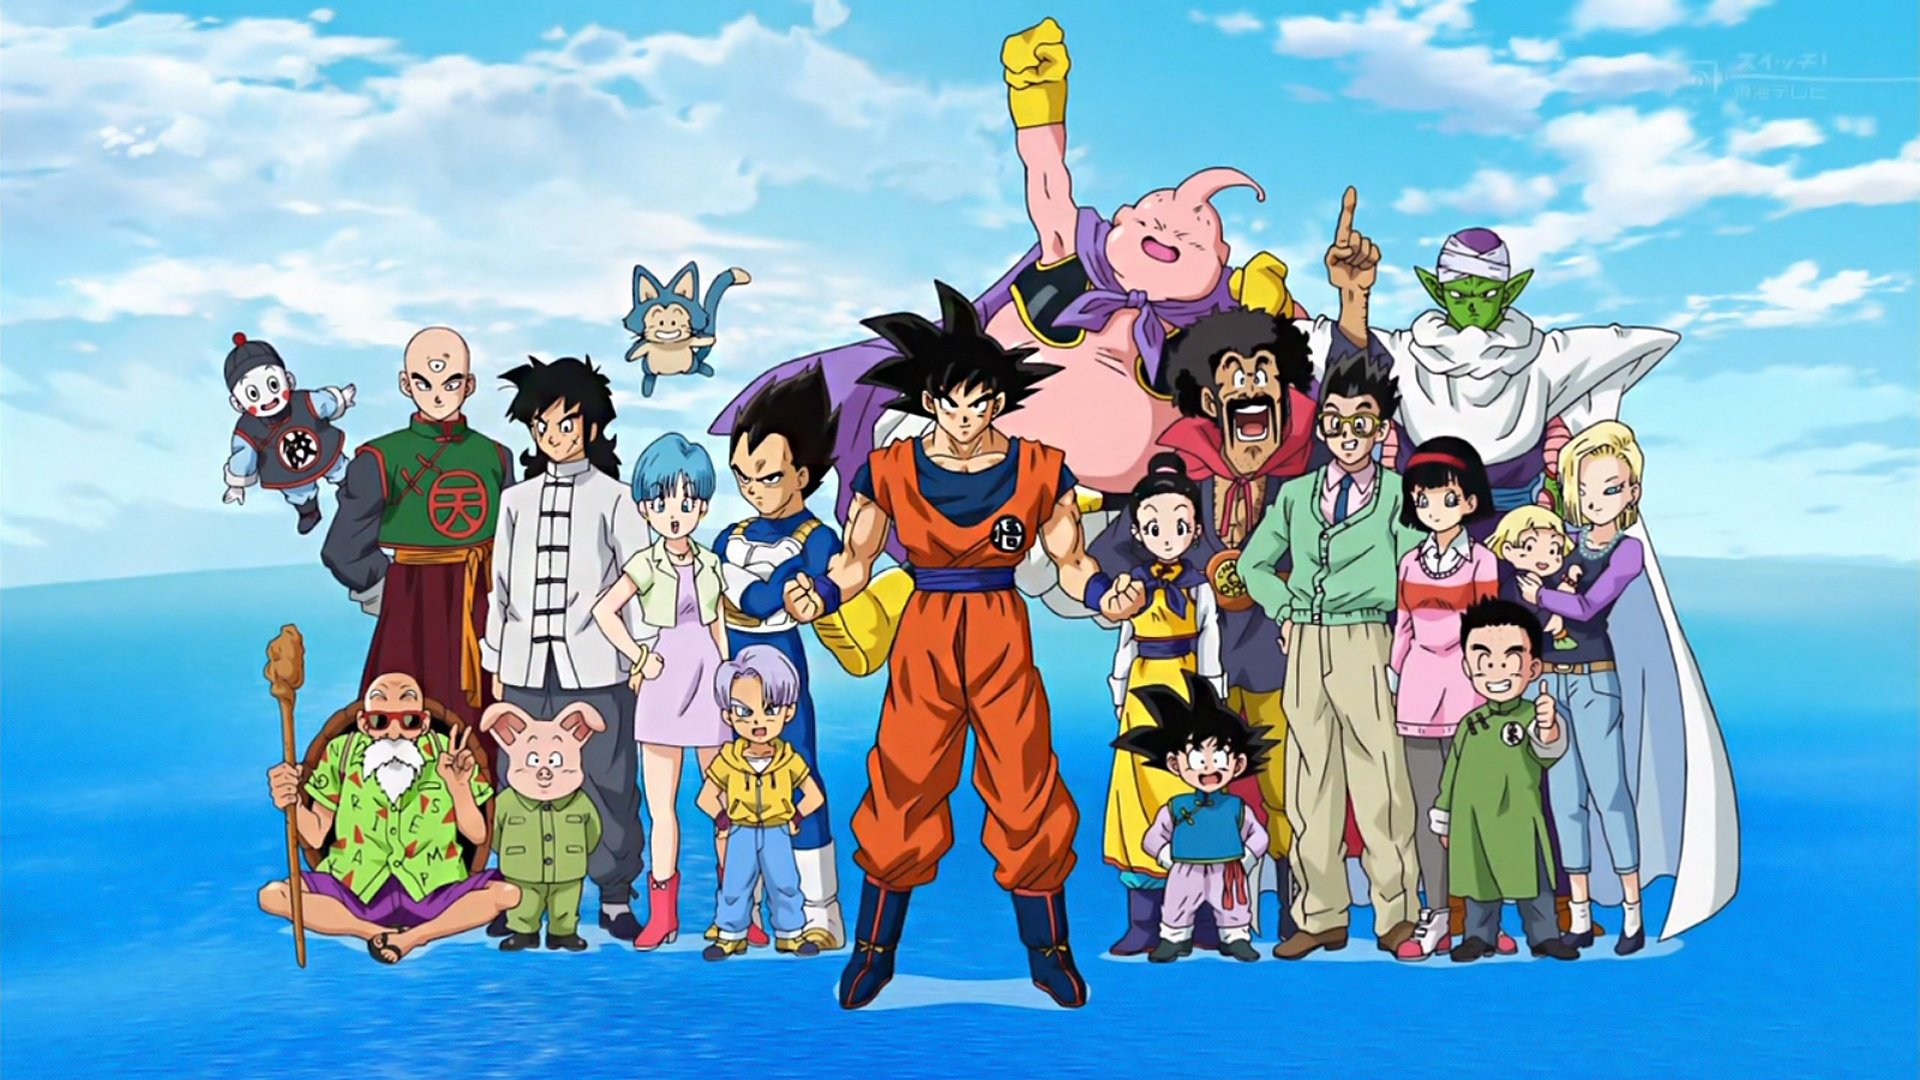 Download full hd 1920x1080 Dragon Ball Super computer wallpaper ID:242414 for free